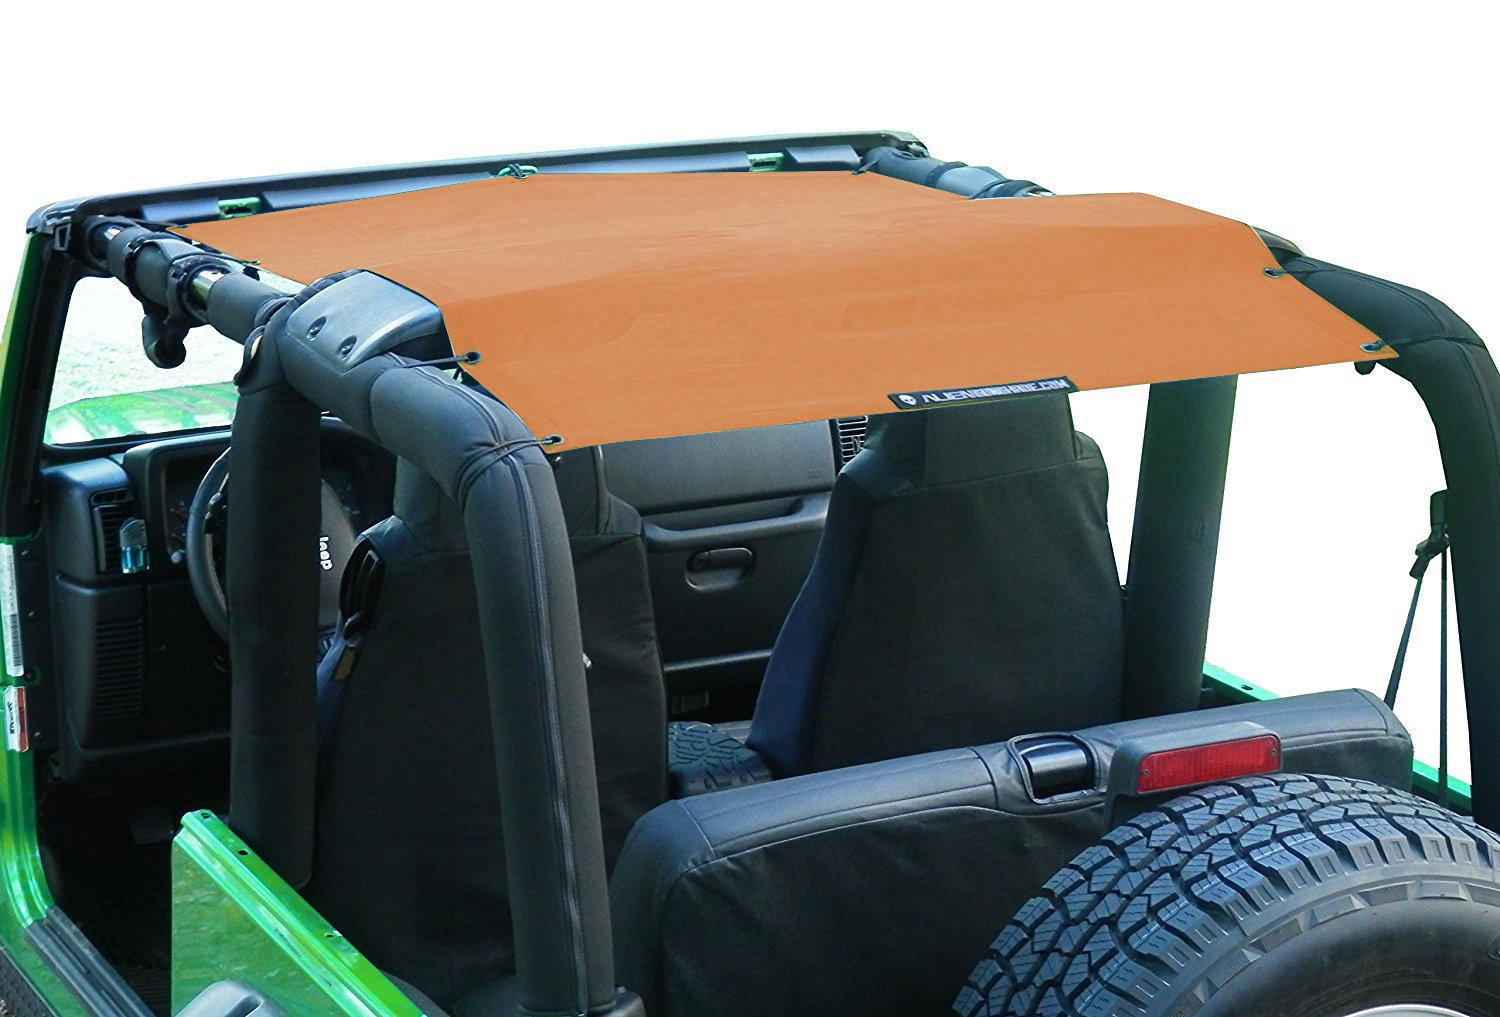 Lava 1997-2006 ALIEN SUNSHADE Jeep Wrangler Mesh Shade Top Cover with 10 Year Warranty Provides UV Protection for Your TJ